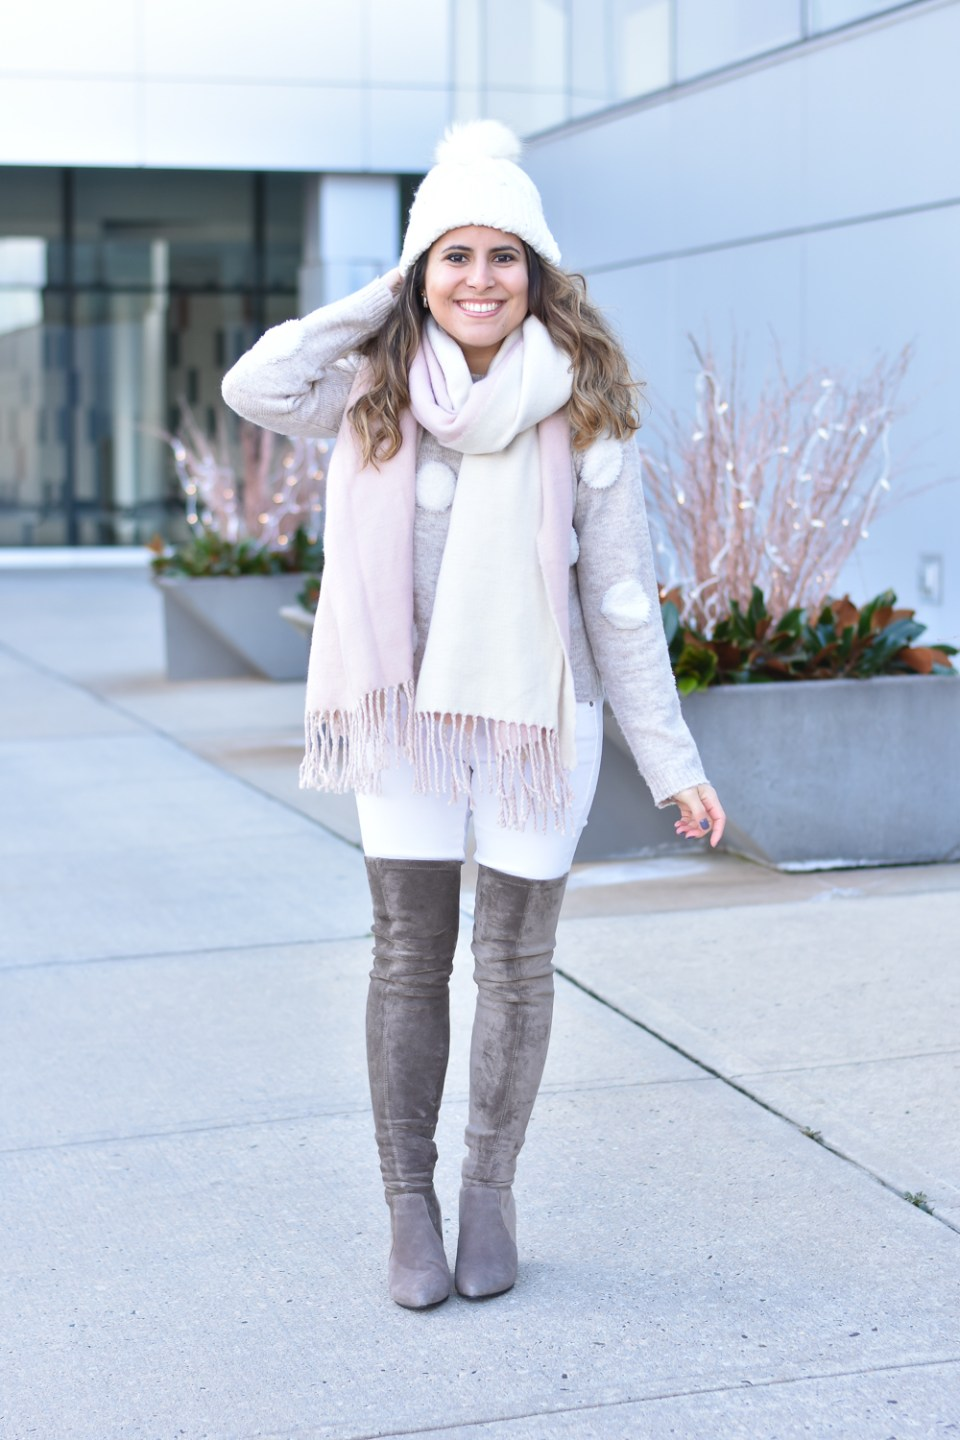 aab9e42a749 How to Style White Jeans in the Winter